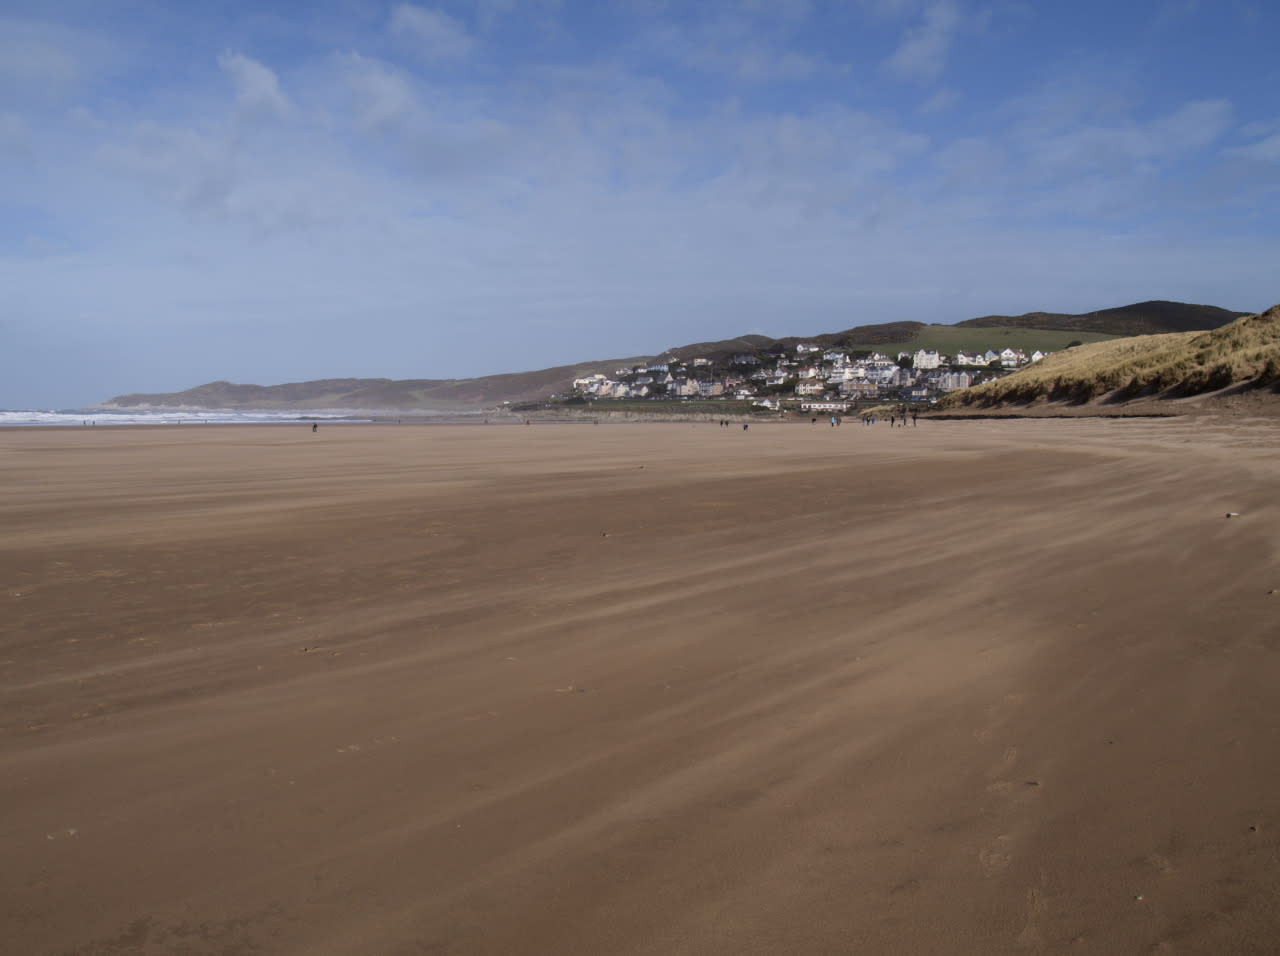 <p>This surfing hotspot has held onto its crown, topping the list of the UK's best beaches. The rolling waves, vast swathes of sand and collar of wild rocky cliffs might have something to go with it. (Education Images/Getty)</p>